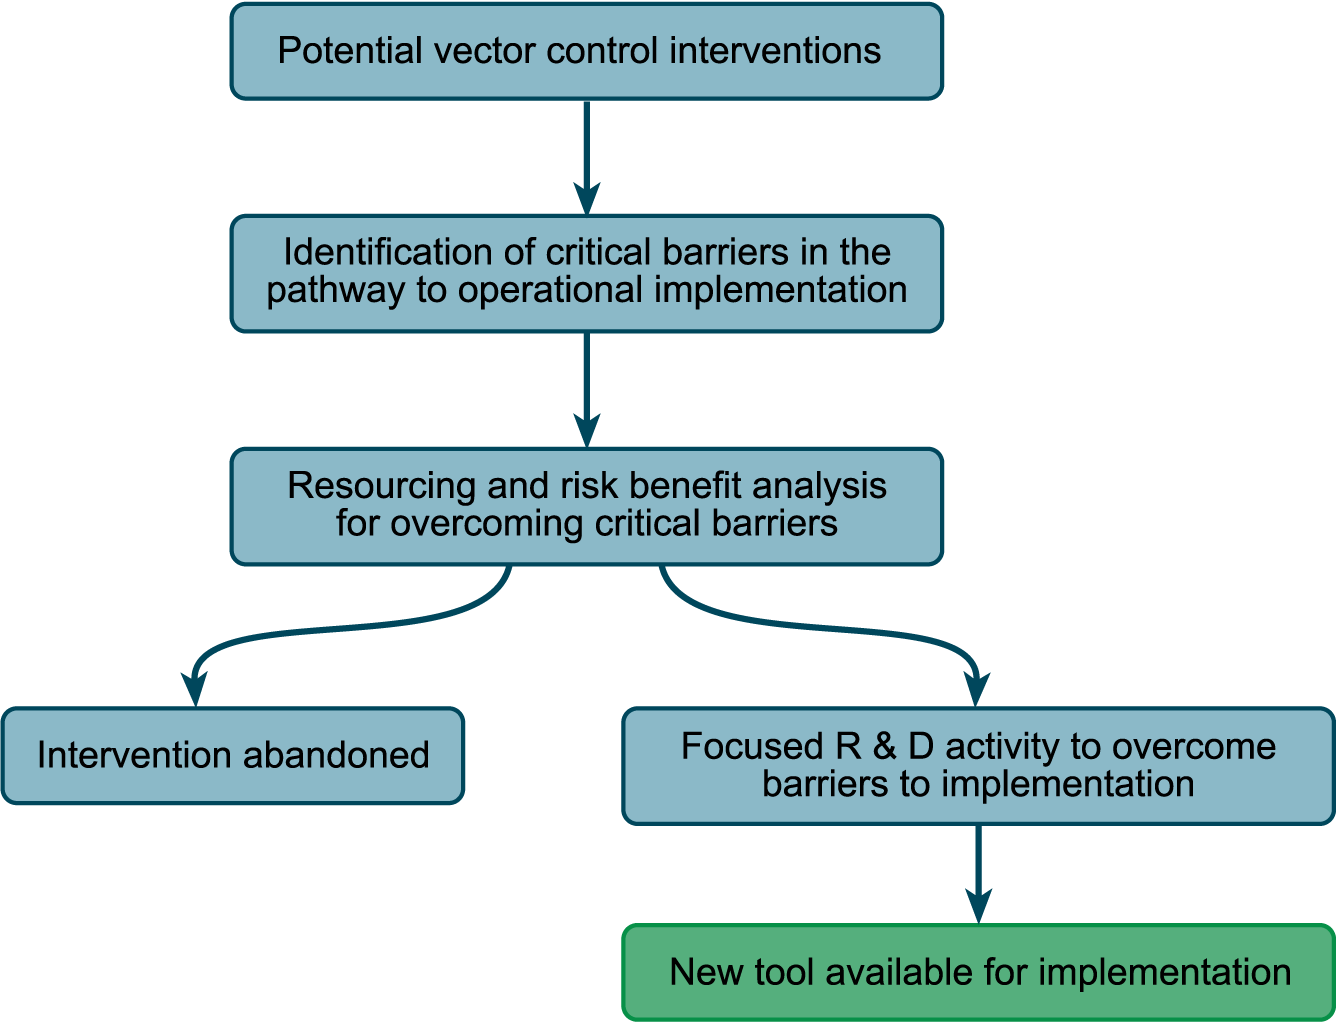 A scheme for the analysis of the development status of the different interventions; similar schemes are used in the commercial development of drugs, for example.